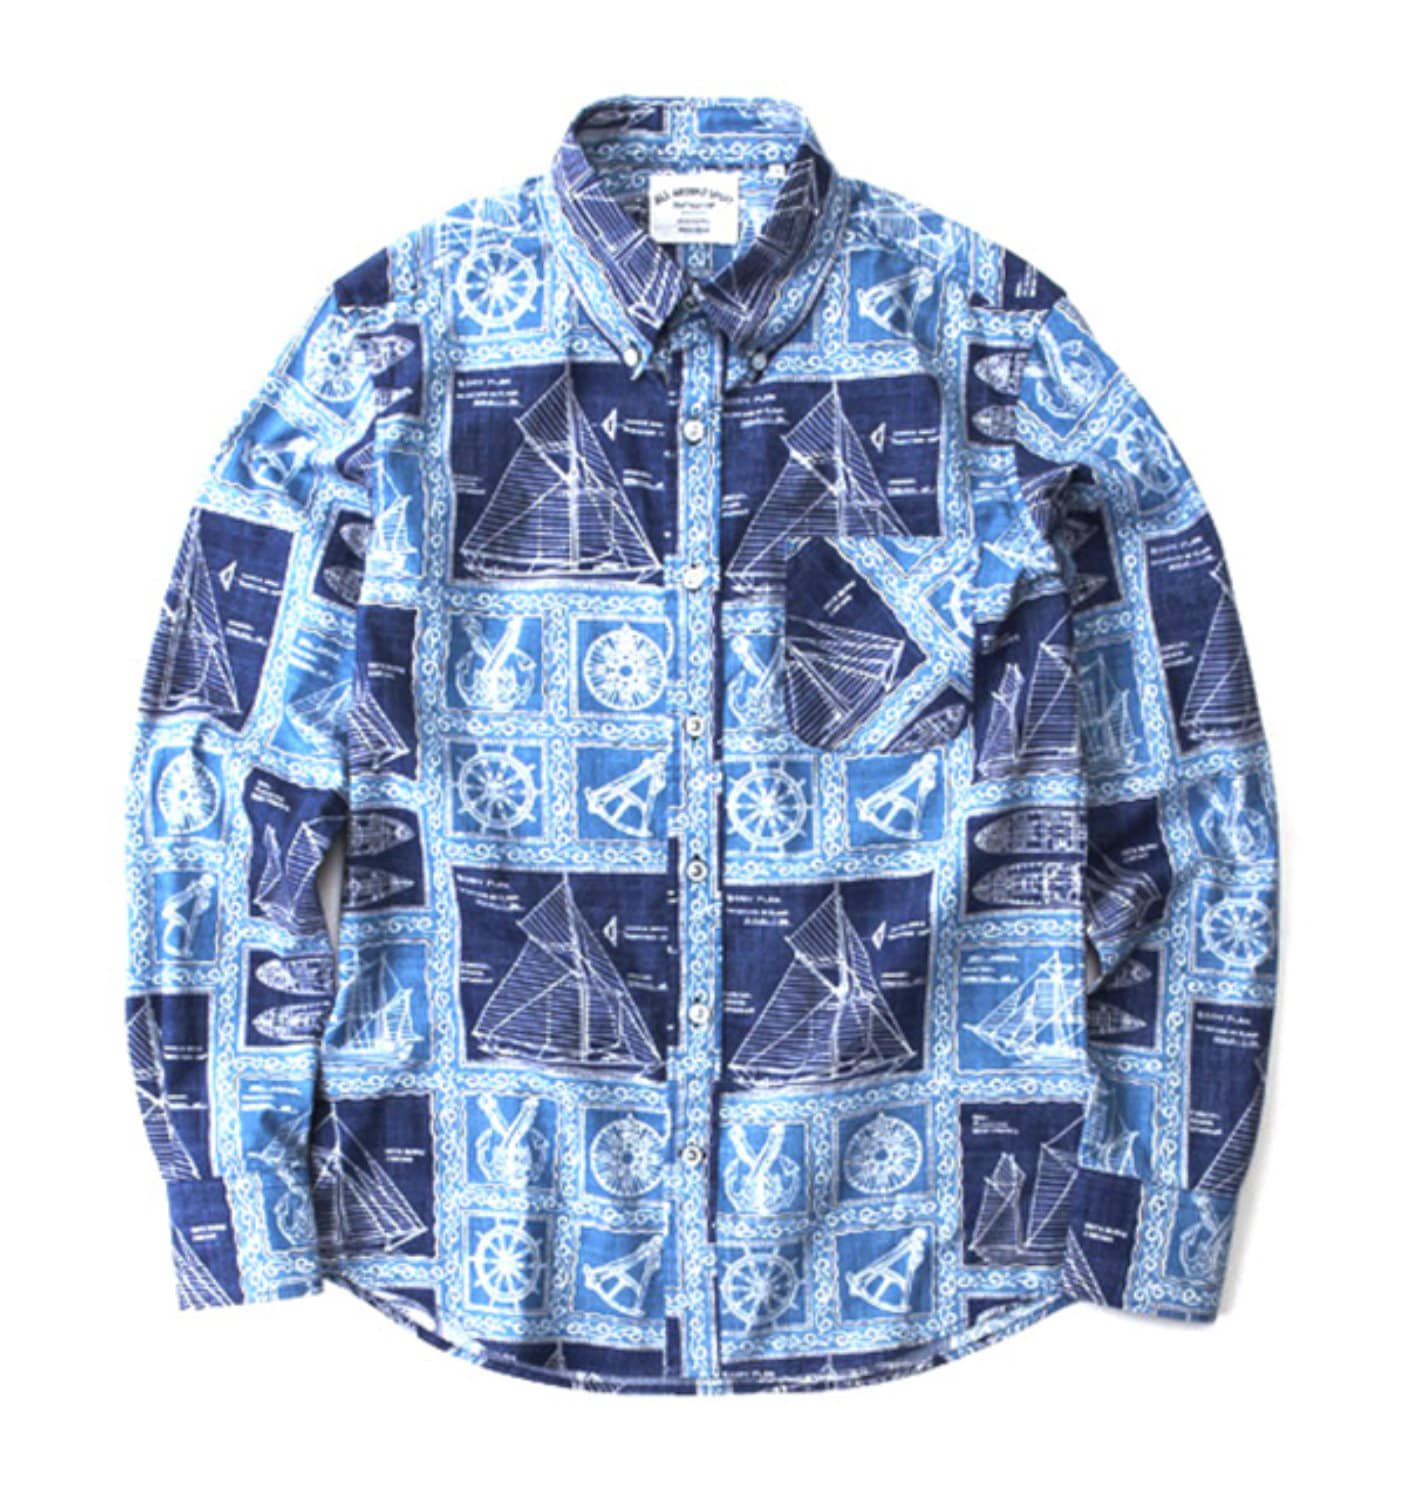 SS01 NAVY SHIP SHIRT